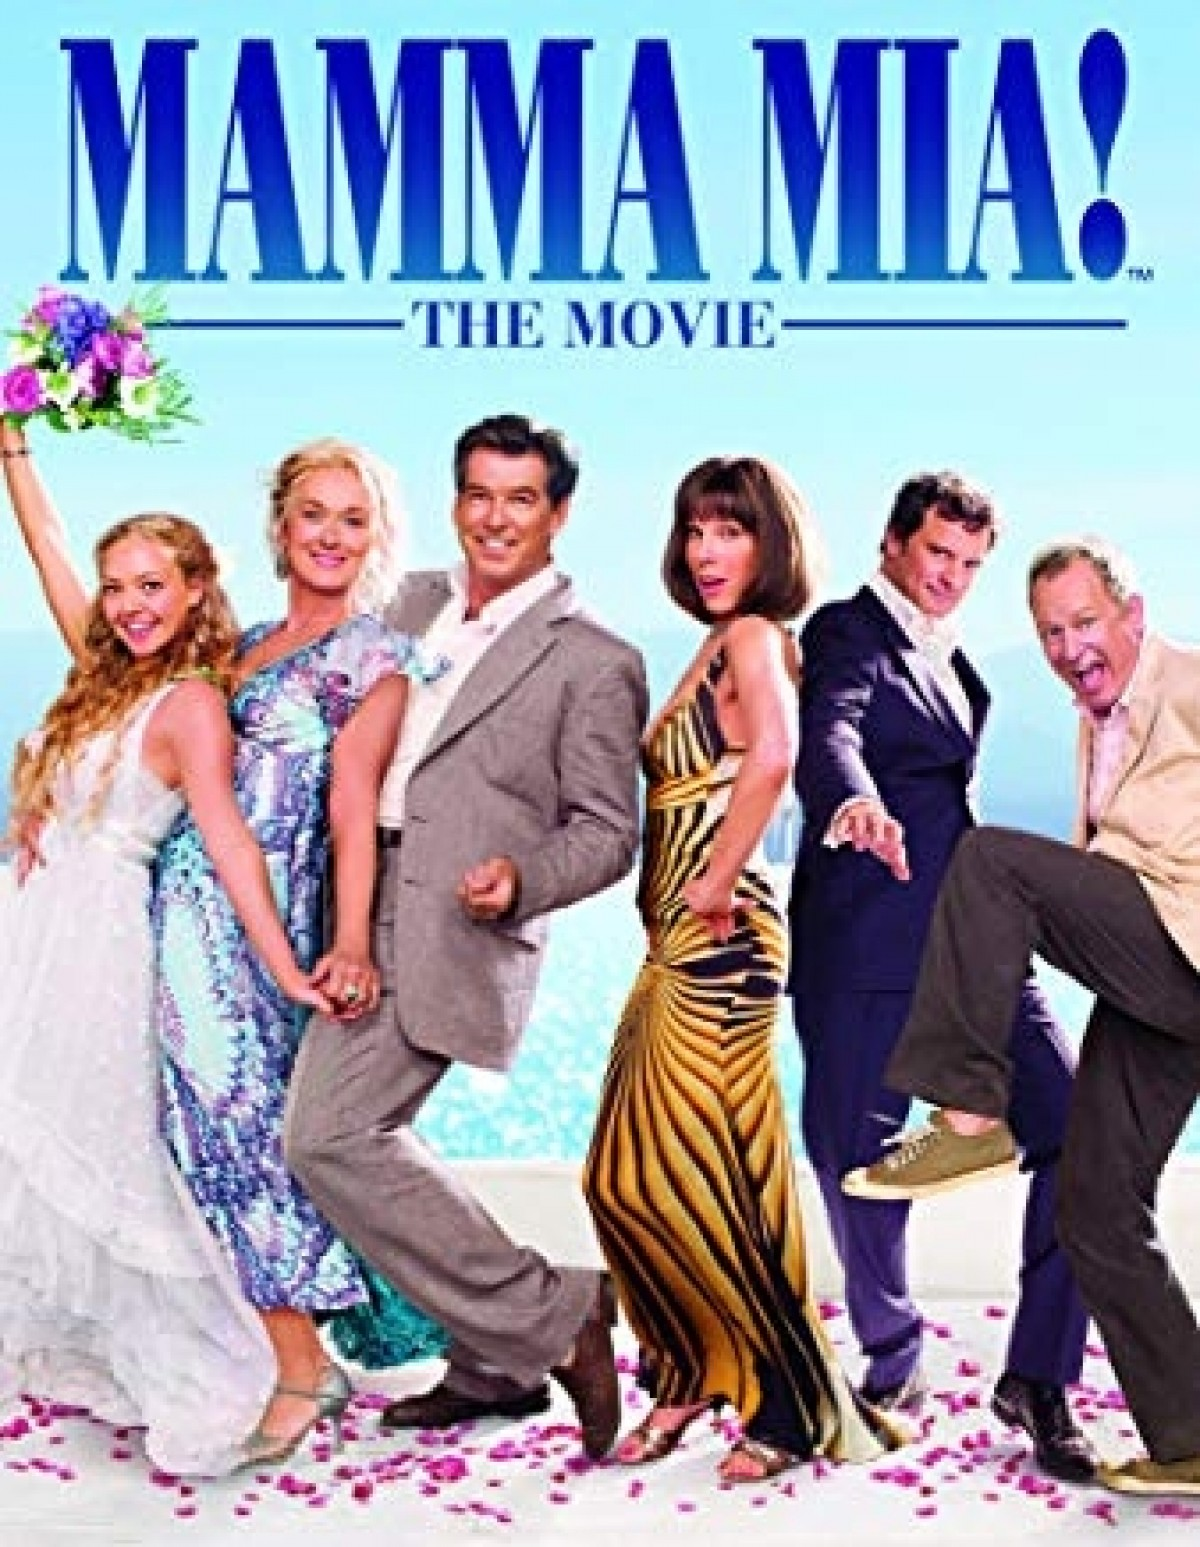 Mamma Mia 2008 Mamma Mia Here We Go Again 2018 Blog Indian Prairie Public Library